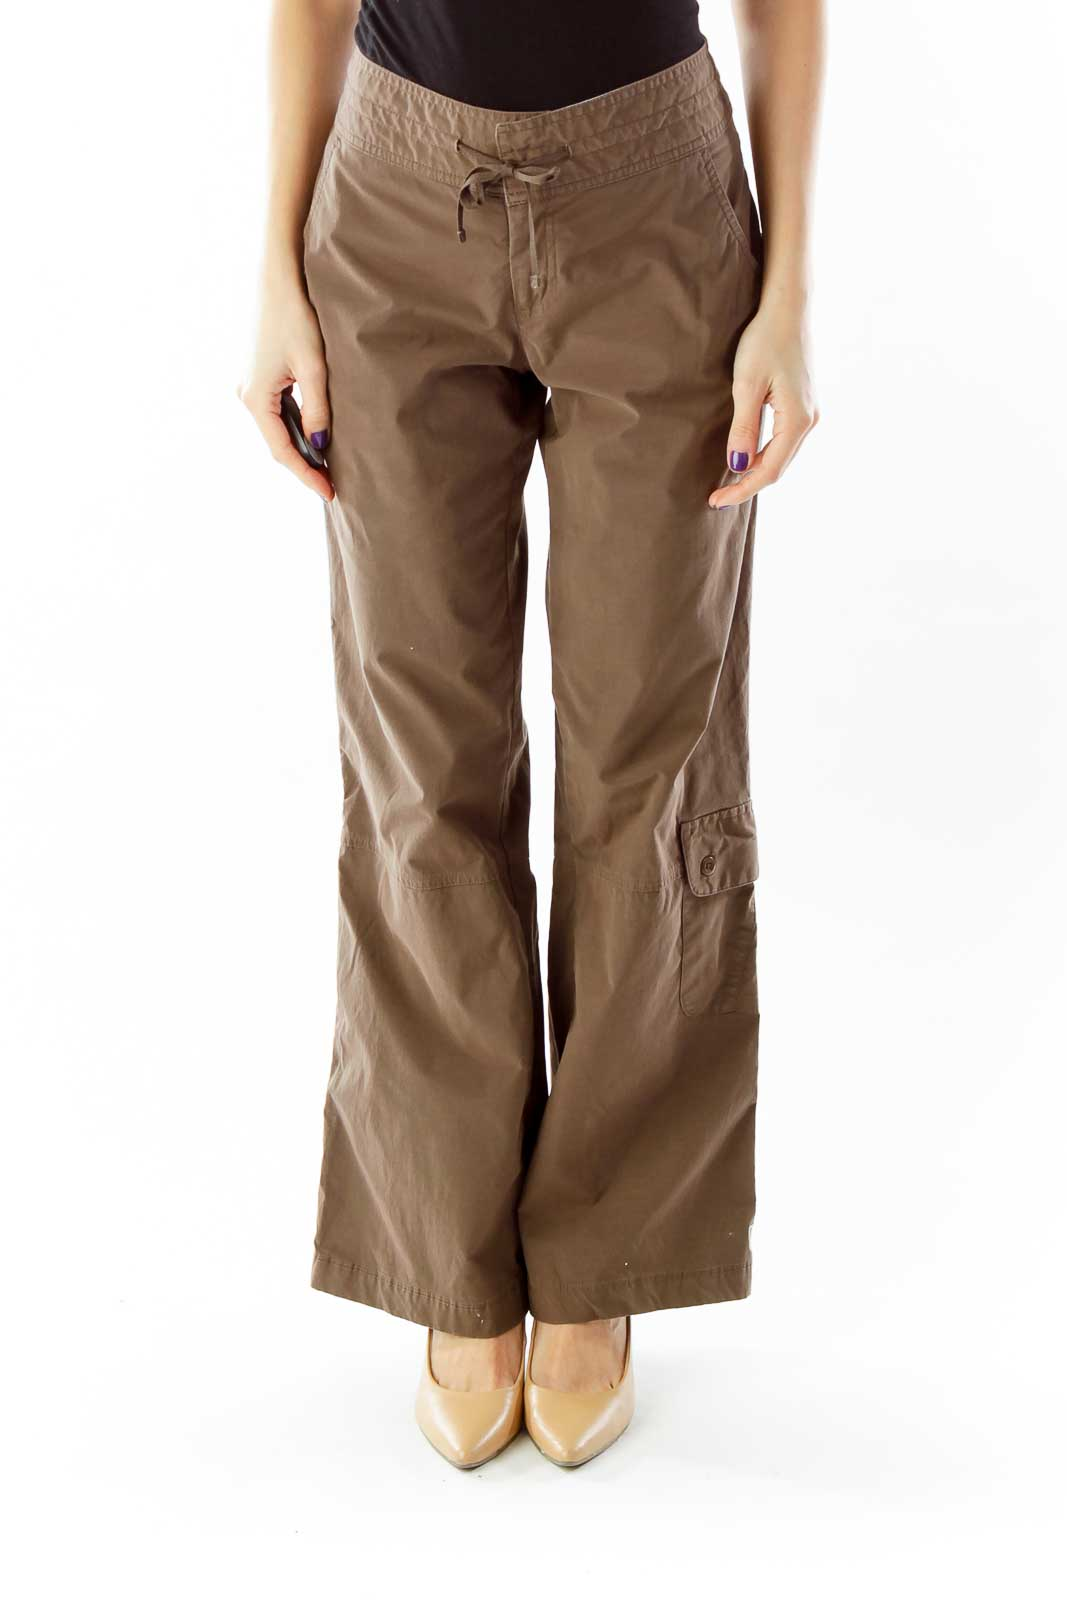 Brown Drawstring Cargo Pants